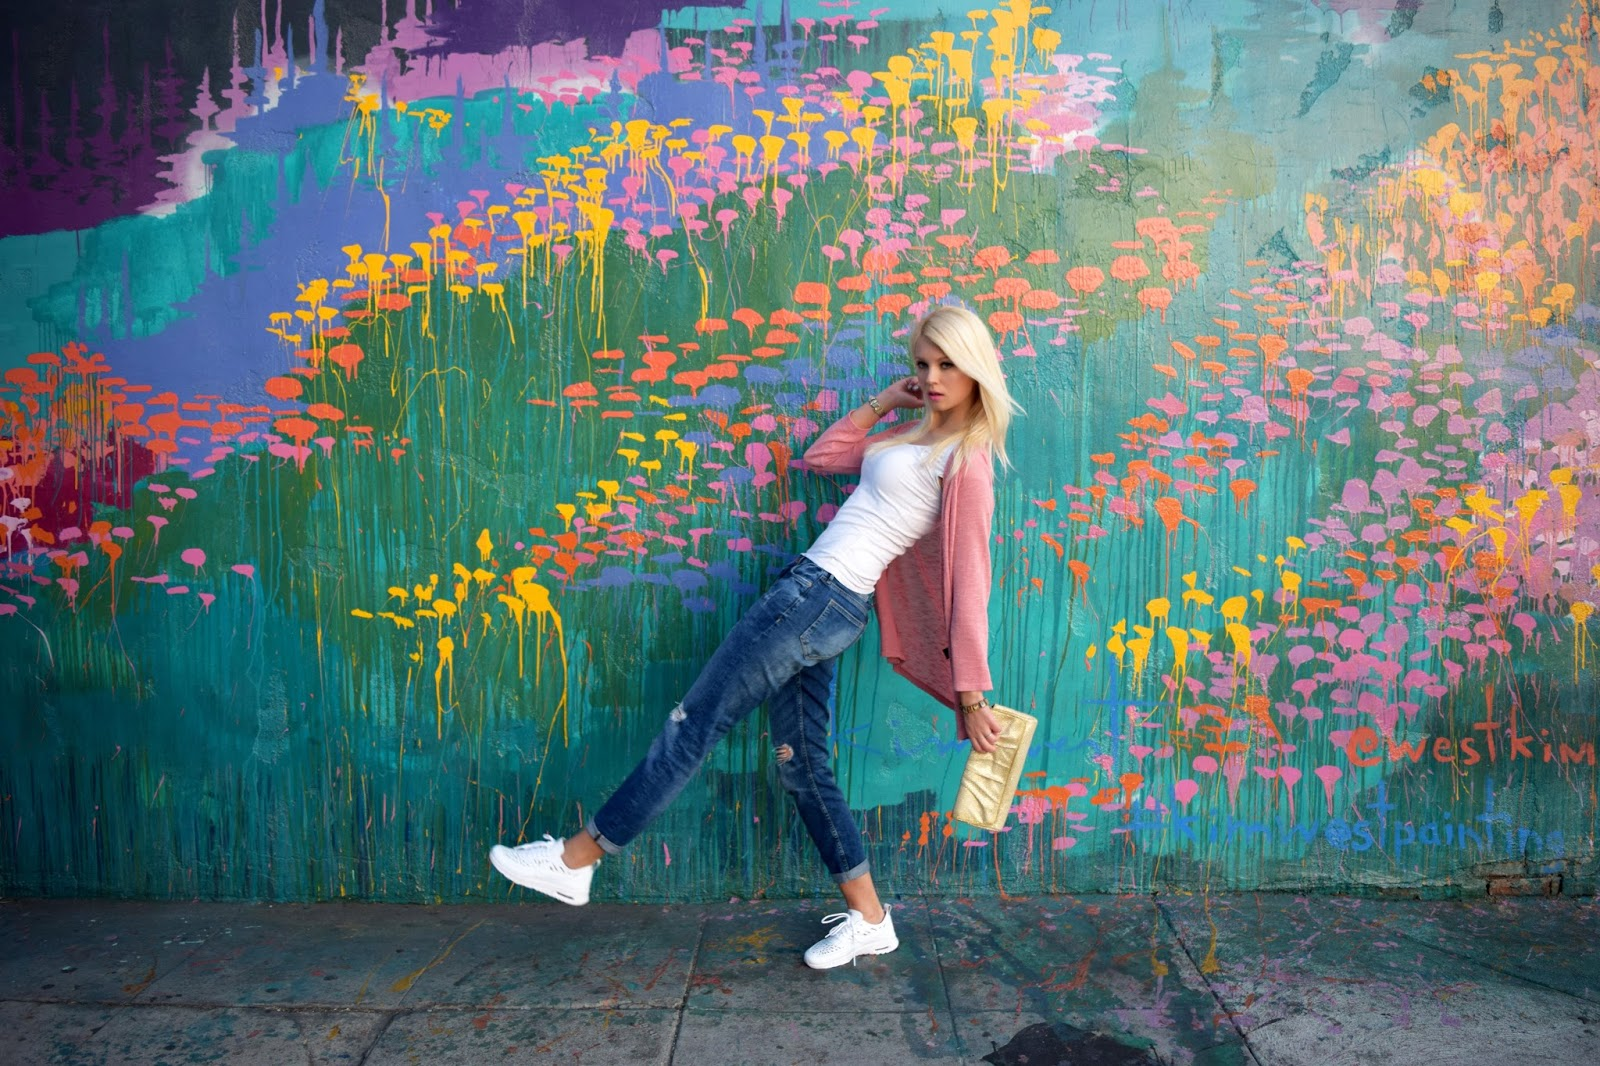 Nike air max thea, Nike, sneaker, boyfriend jeans, gold clutch, pink, pink cardigan